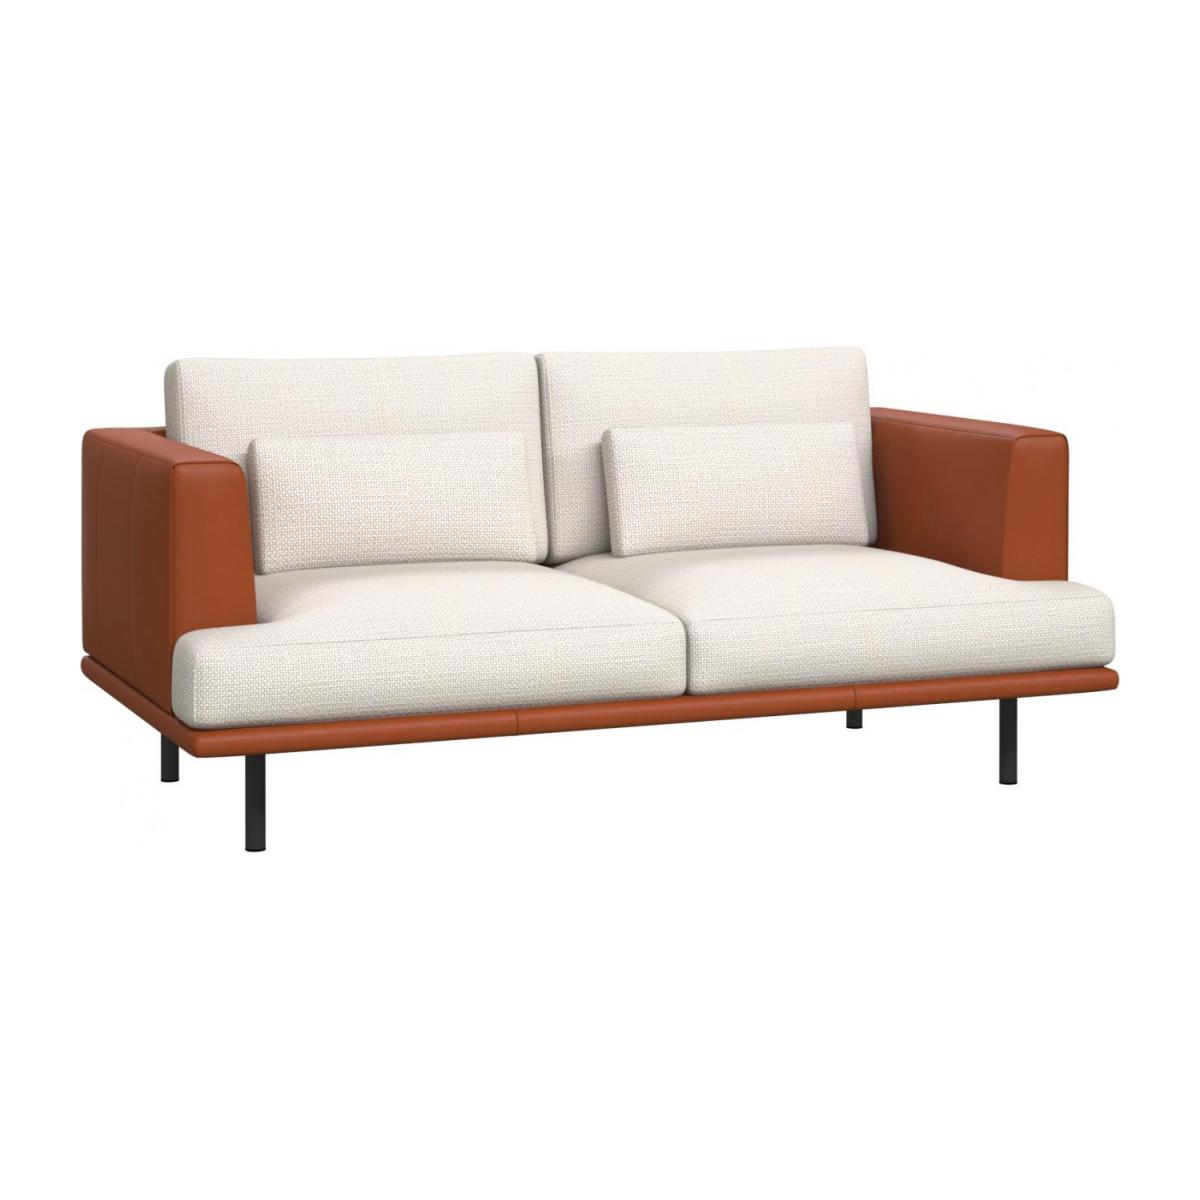 Baci 2 Seater Sofa In Fasoli Fabric Snow White With Base And